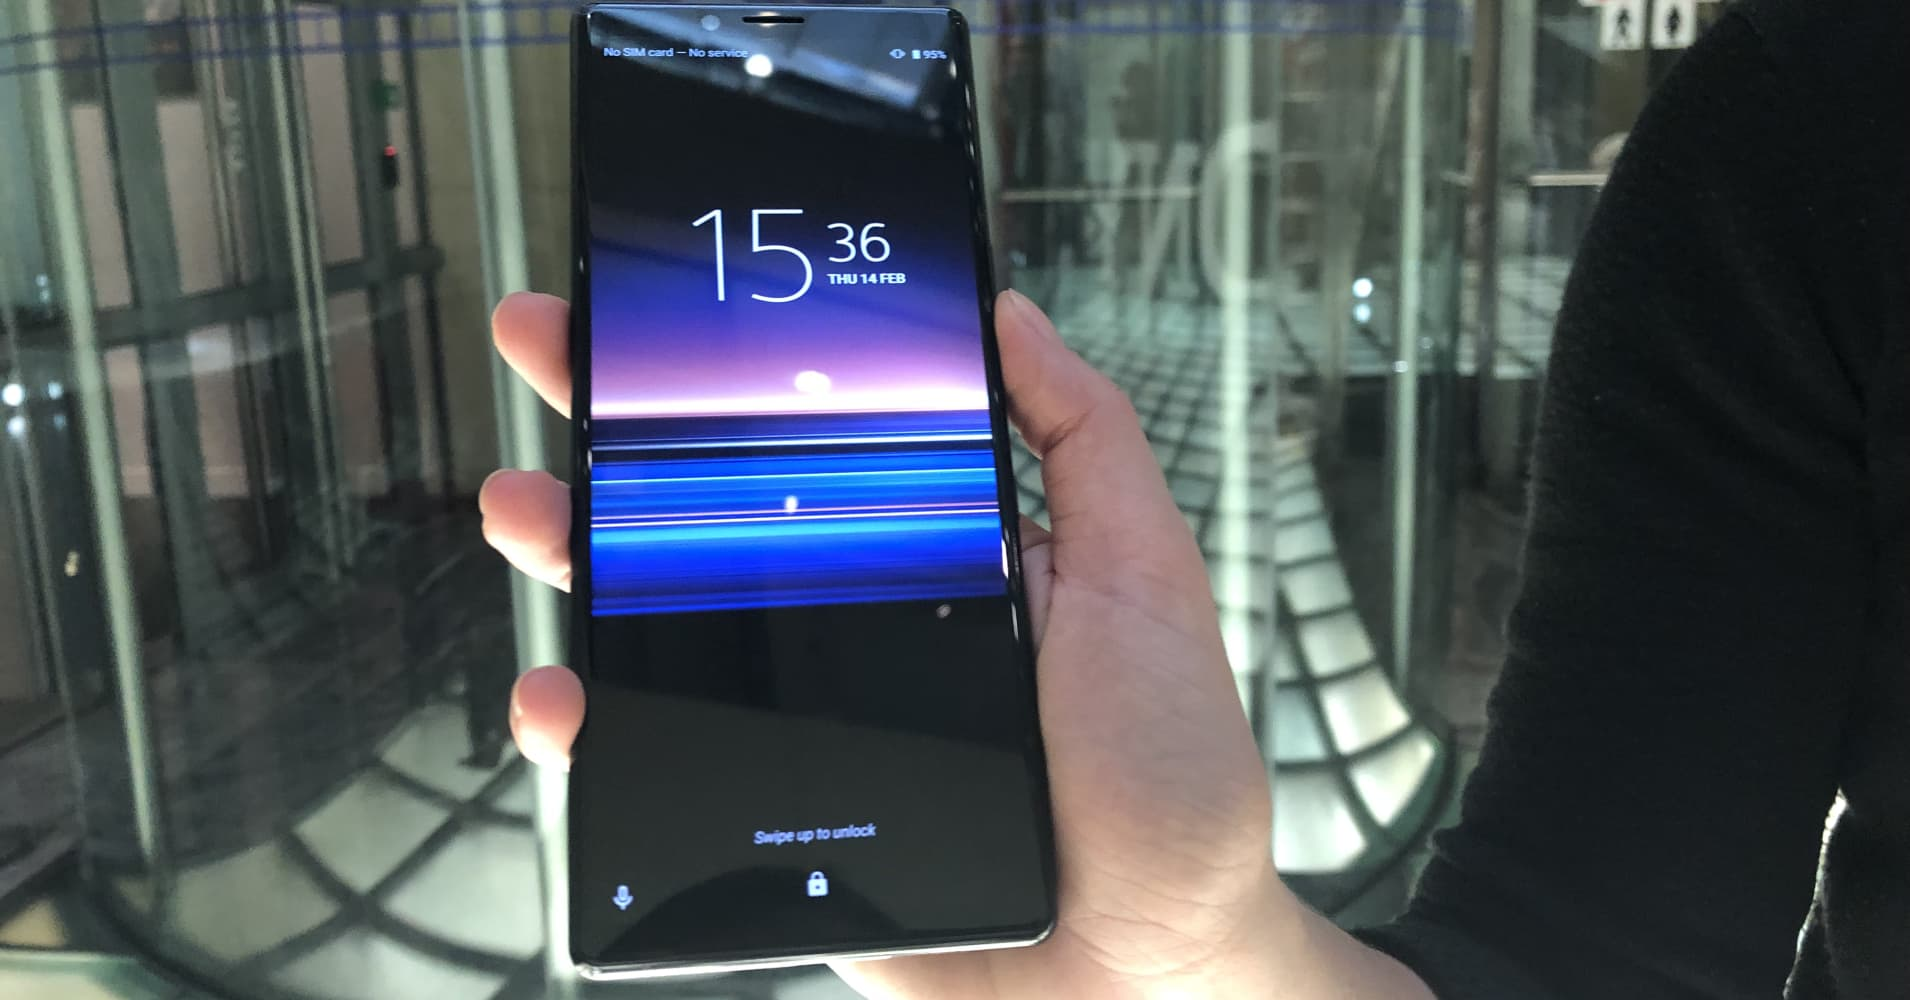 Sony launches new phones with movie theater-style screens